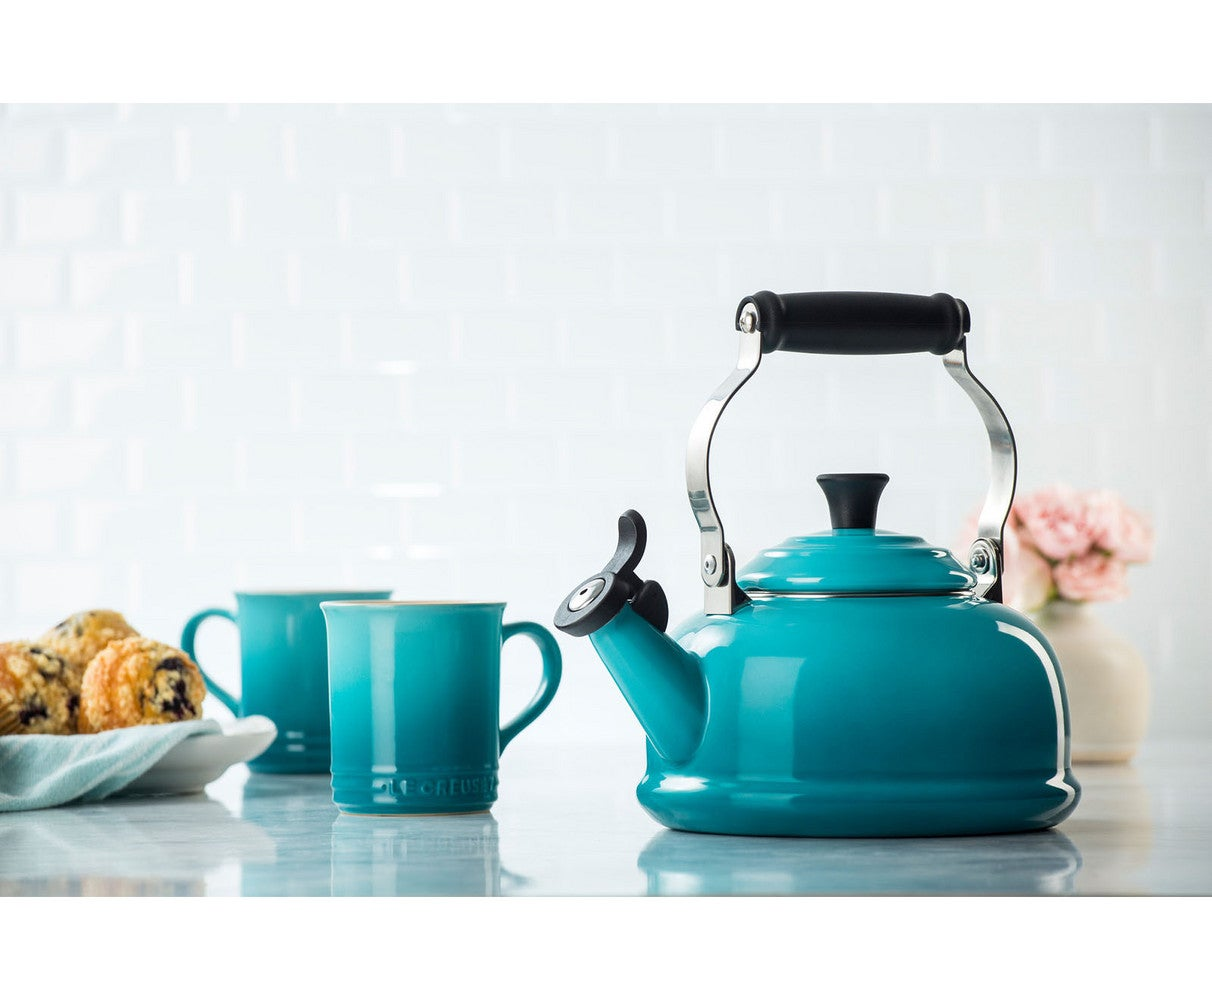 All Your Questions About Le Creuset Answered